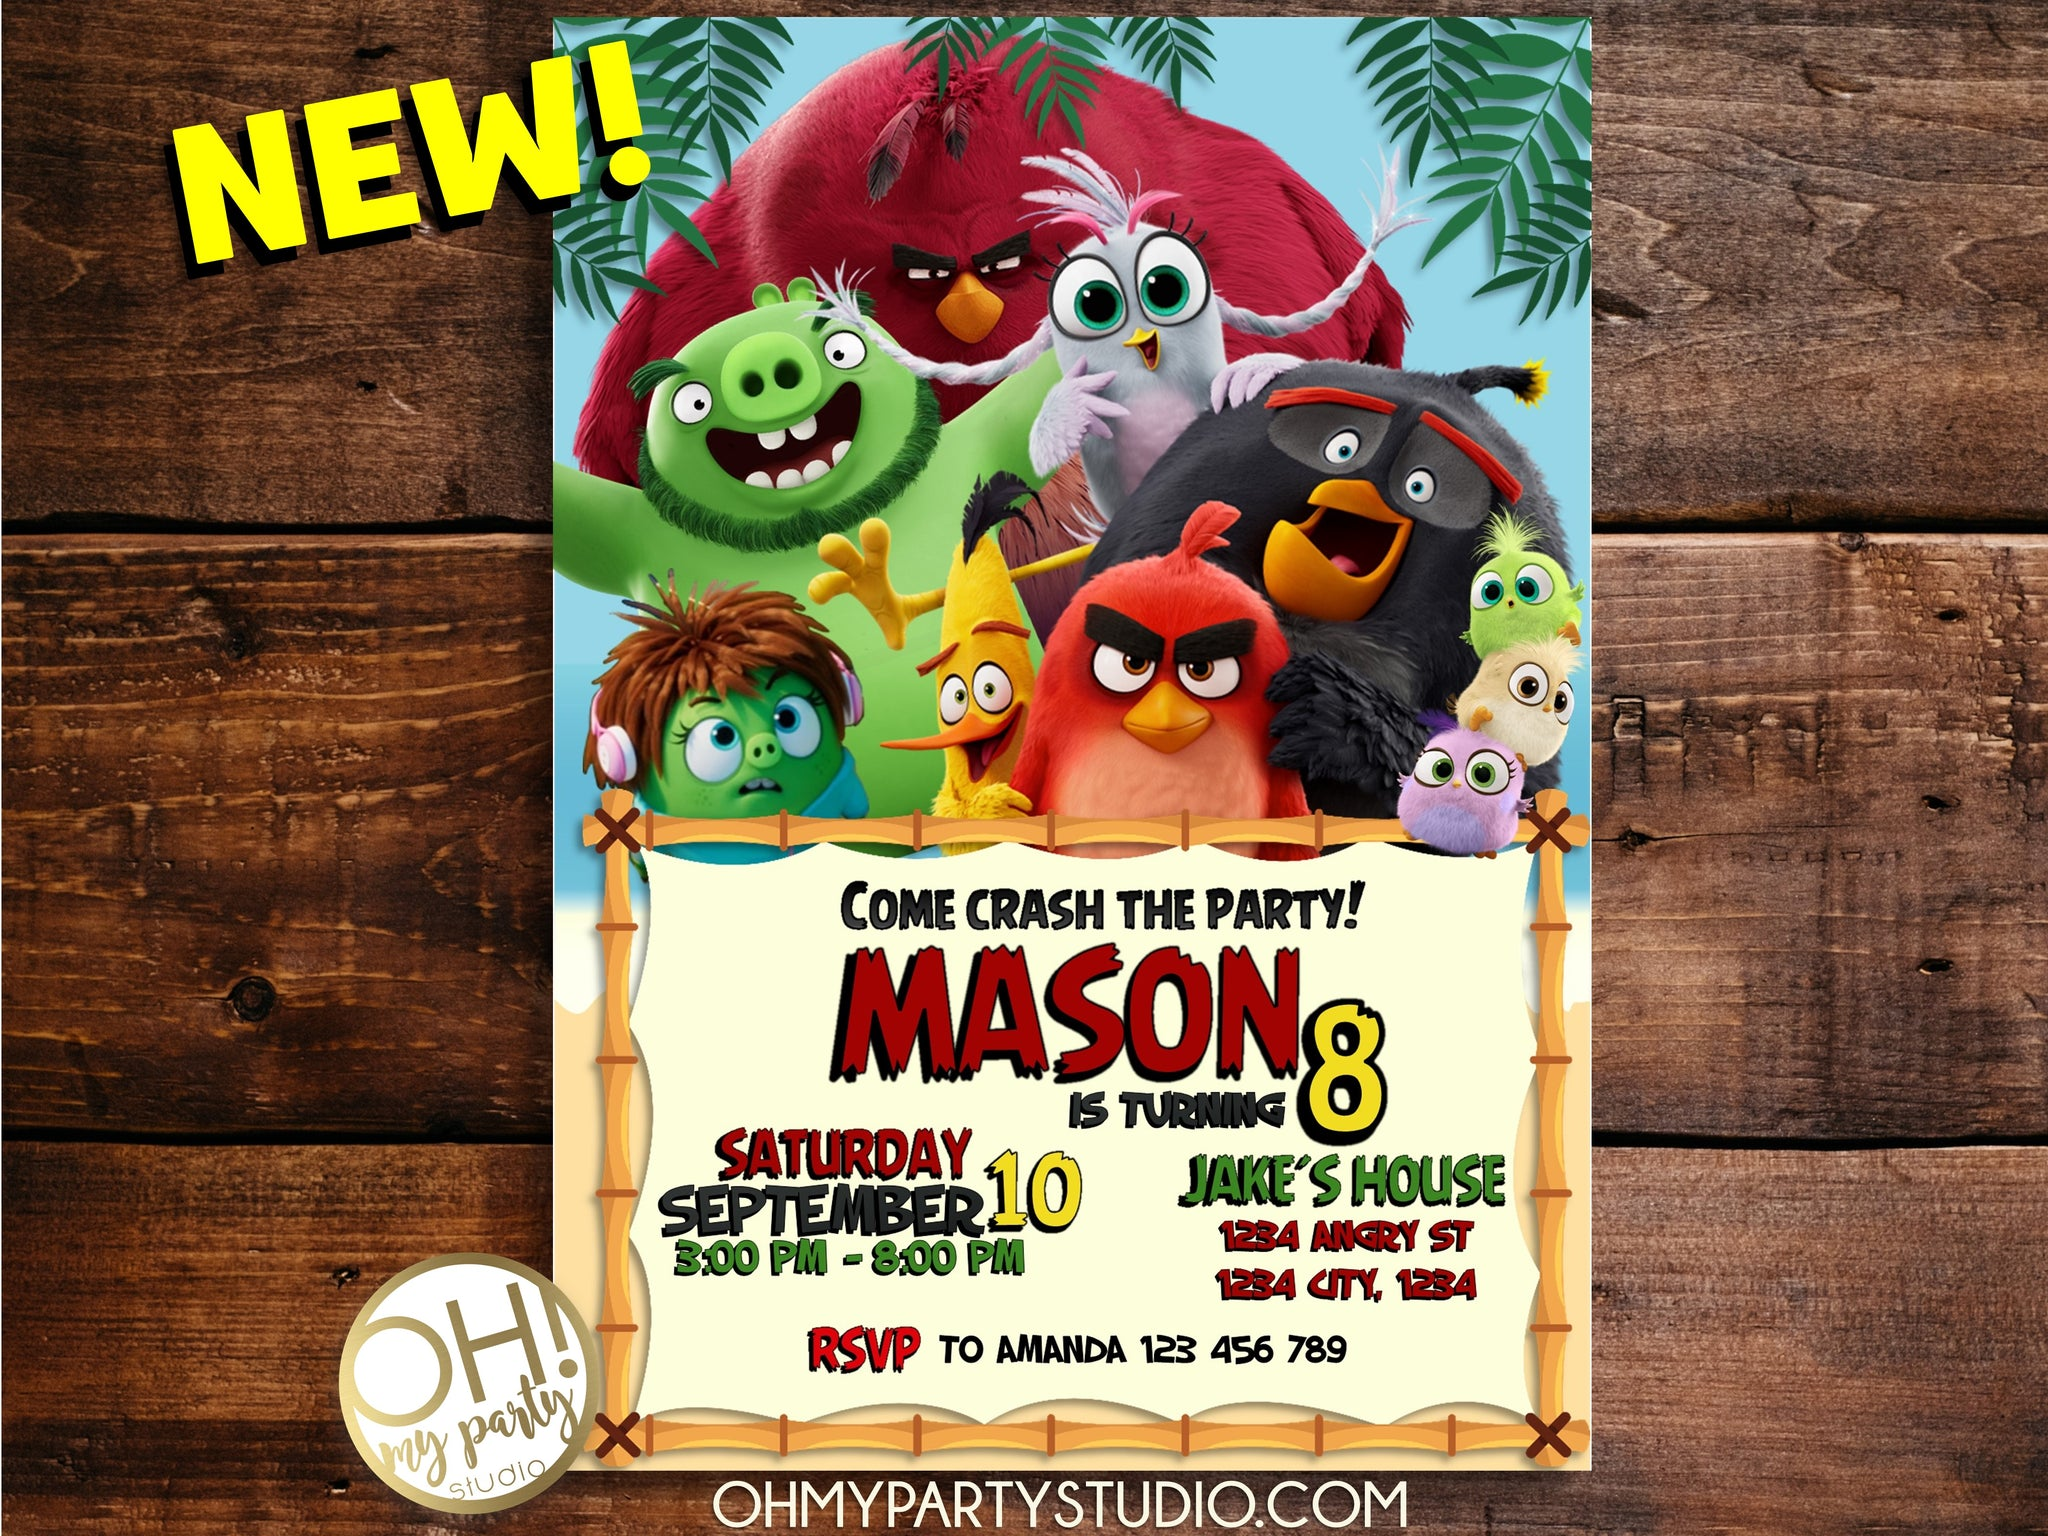 ANGRY BIRDS MOVIE INVITATION, ANGRY BIRDS 2 MOVIE INVITATION, ANGRY BIRDS 2 INVITATION, ANGRY BIRDS 2 INVITATIONS, ANGRY BIRDS 2 MOVIE INVITE, ANGRY BIRDS 2 PARTY, ANGRY BIRDS 2 BIRTHDAY, ANGRY BIRDS 2 MOVIE PARTY, ANGRY BIRDS 2 MOVIE PARTY, ANGRY BIRDS 2 PARTY DECORATIONS, ANGRY BIRDS 2 INVITE, ANGRY BIRDS 2 BIRTHDAY INVITATION, ANGRY BIRDS INVITATION DIGITAL